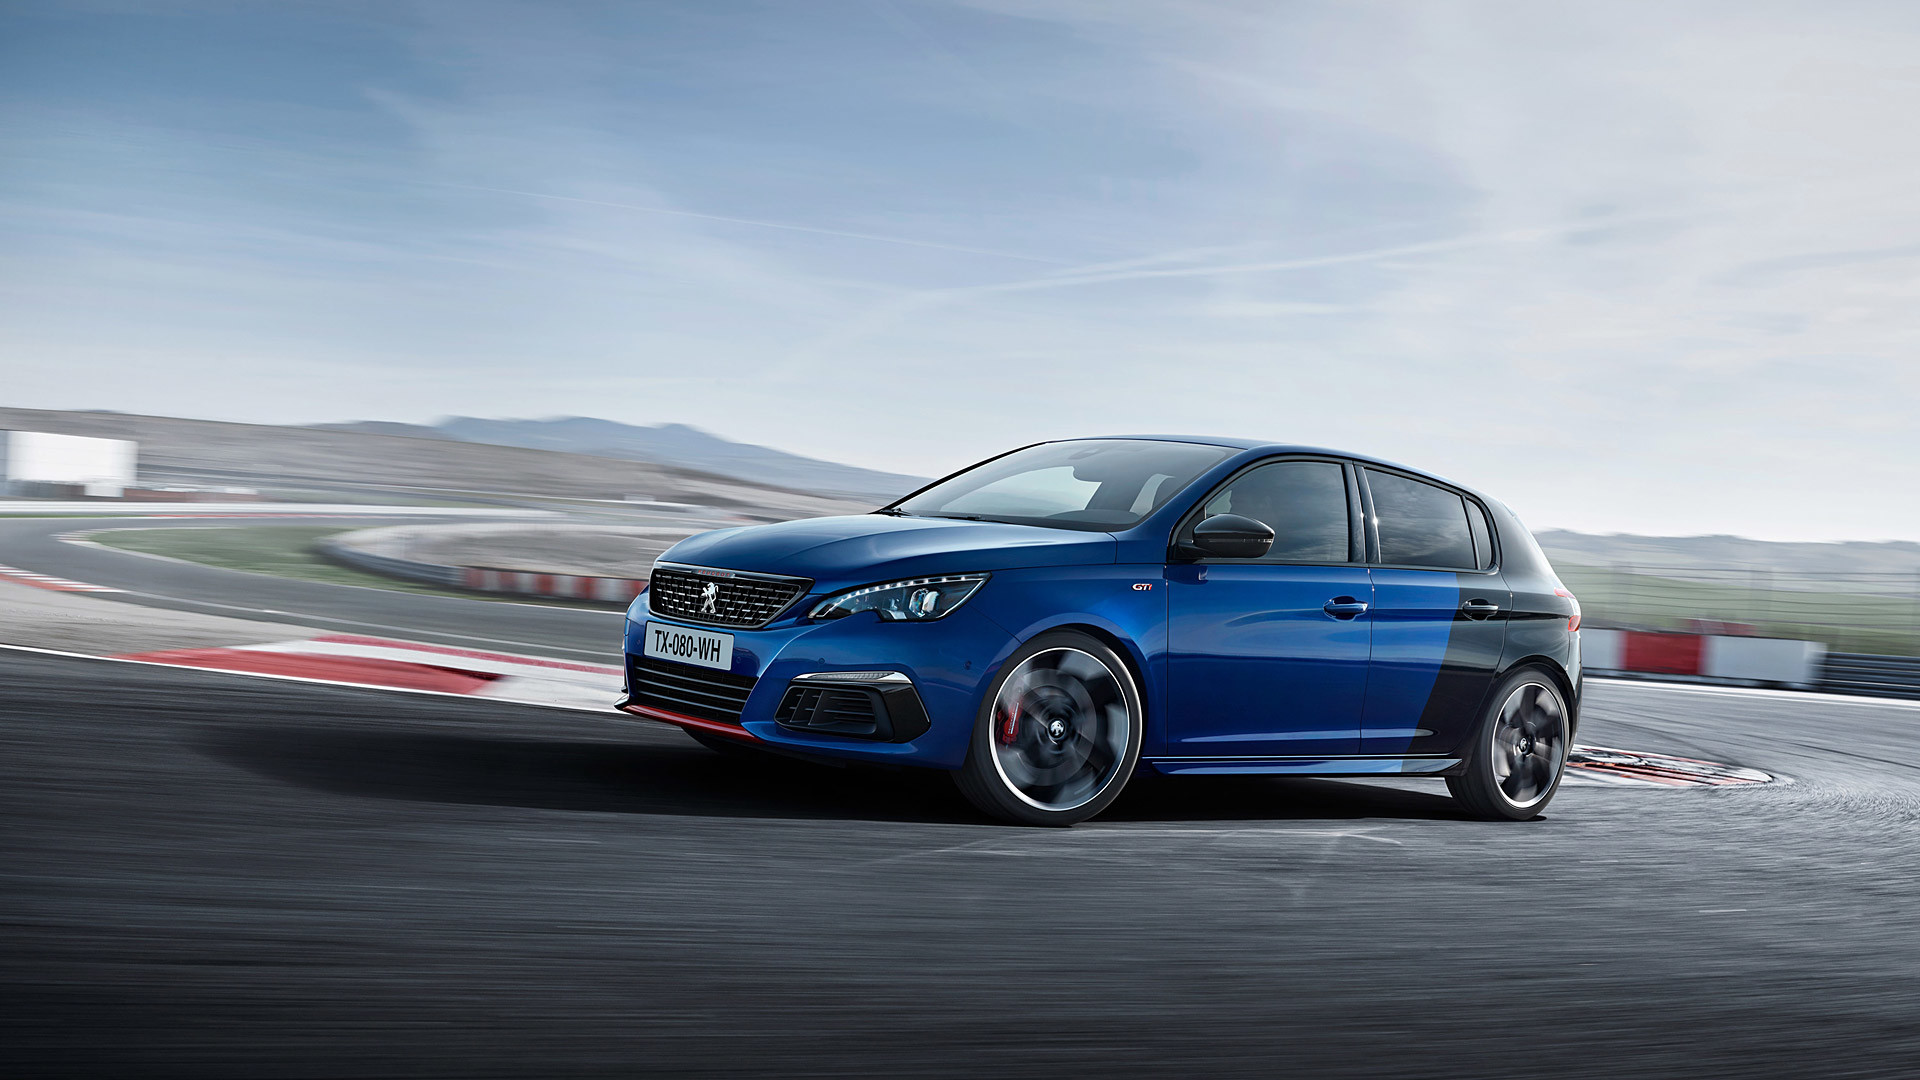 Res: 1920x1080, 2018 Peugeot 308 GTi picture.